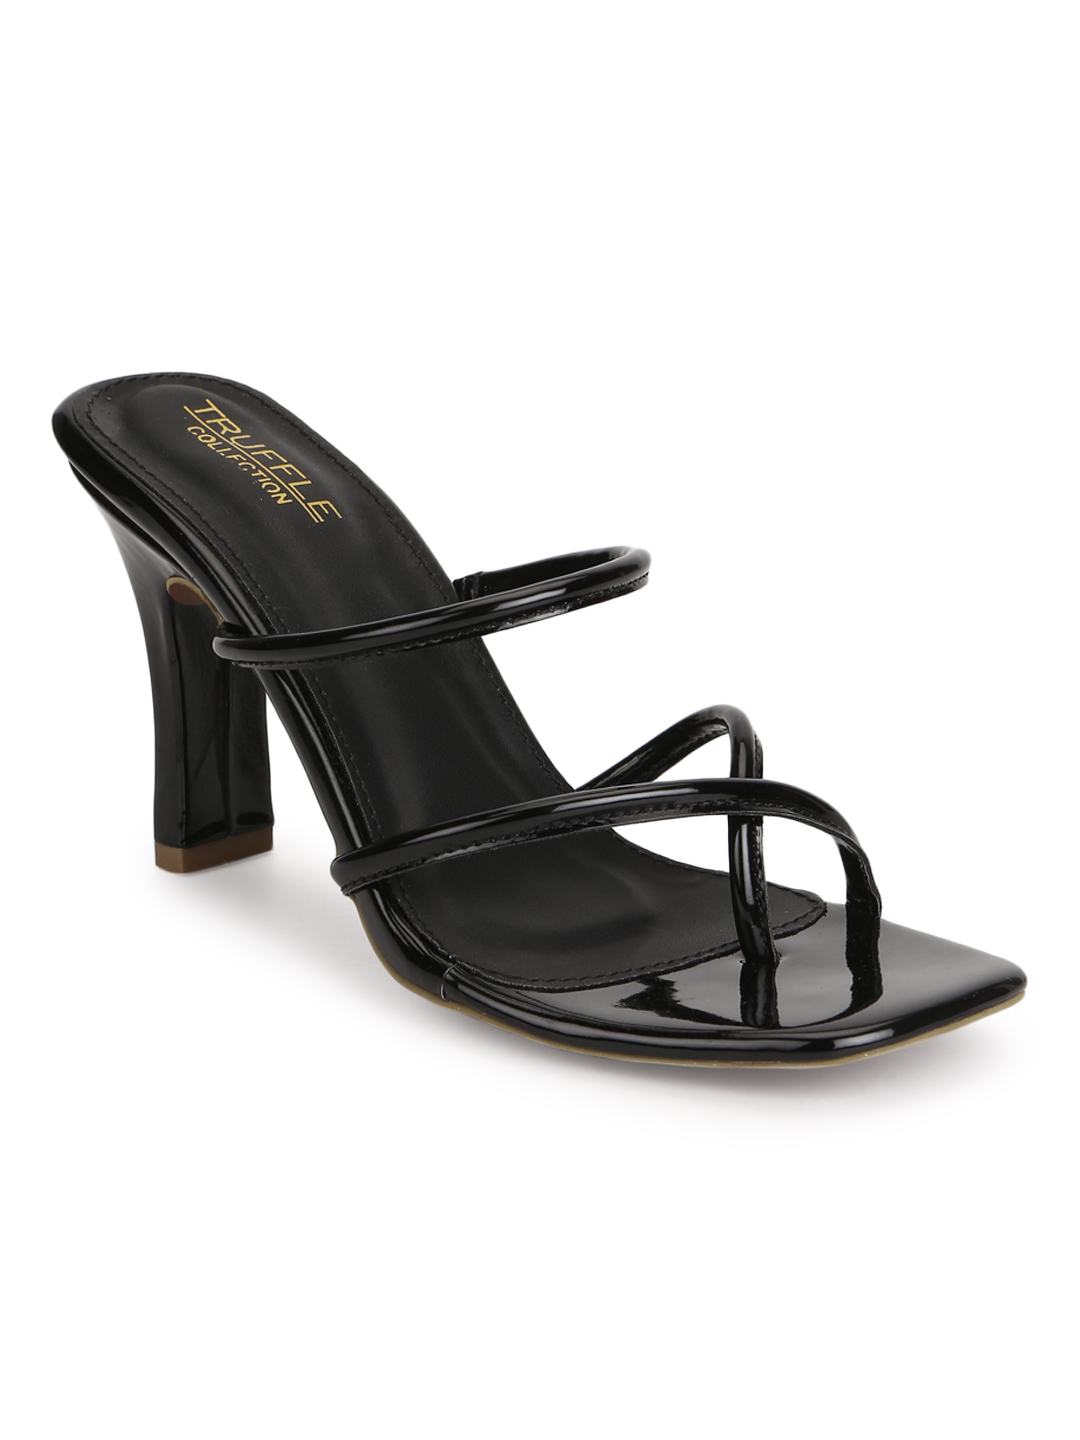 Truffle Collection   Truffle Collection Black Patent Glossy High Heel Mules